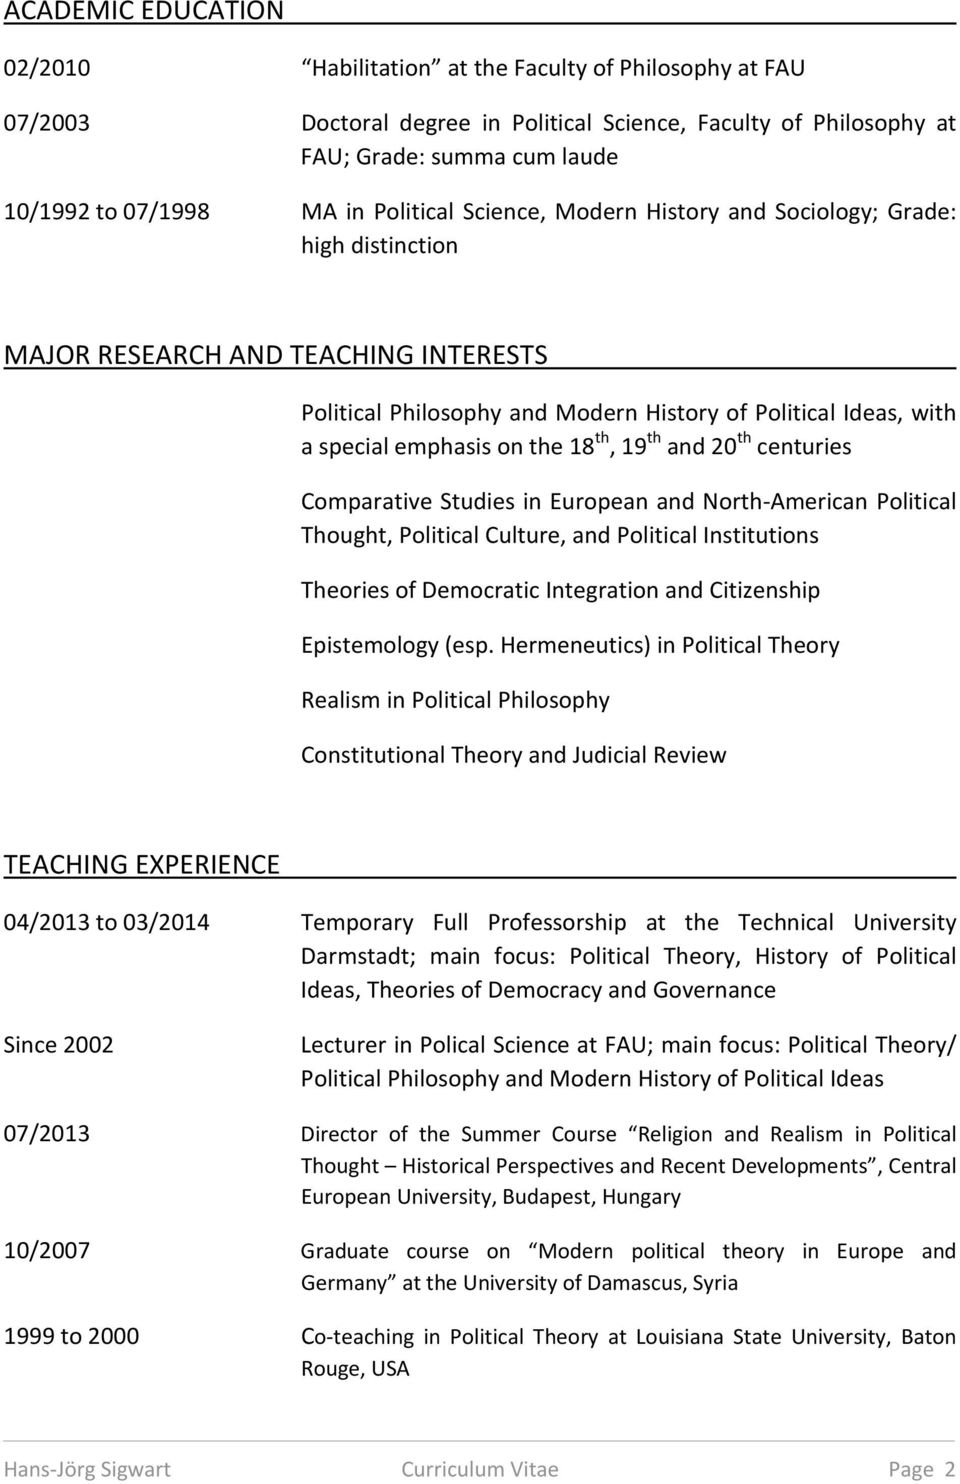 powers of political thought rose 1999 pdf